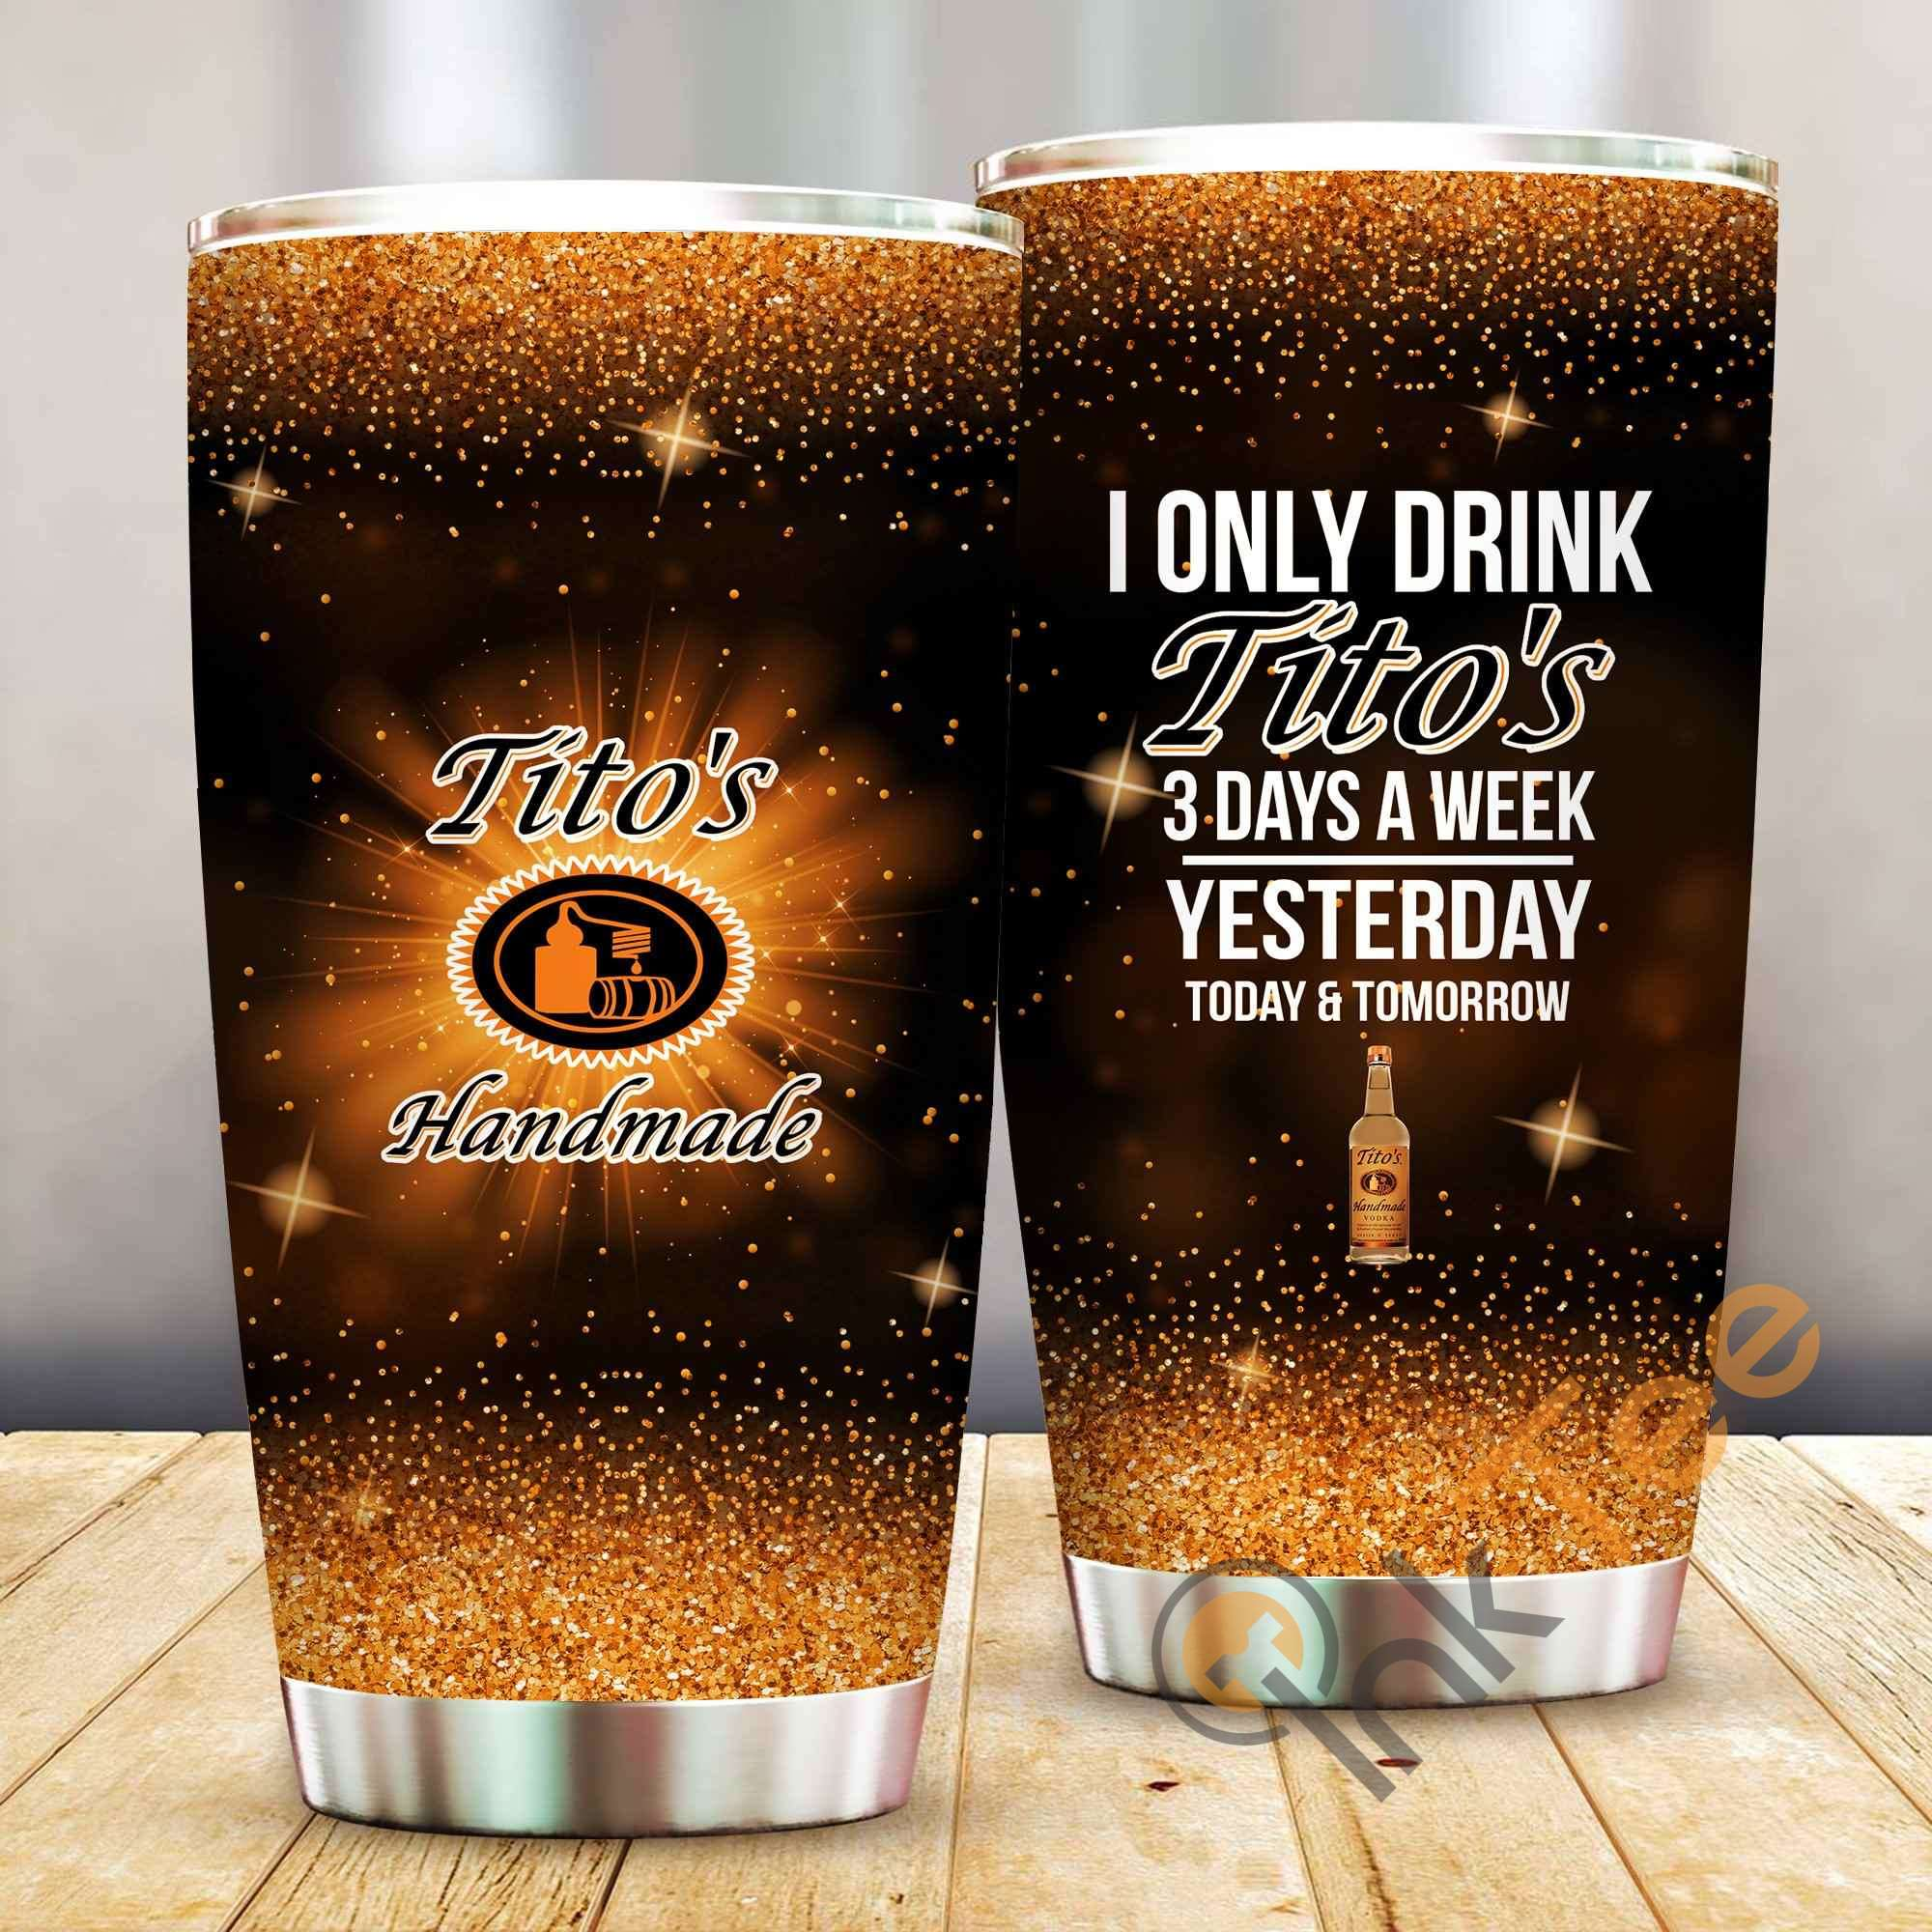 I Only Drink Tito's 3 Days A Week Amazon Best Seller Sku 4011 Stainless Steel Tumbler